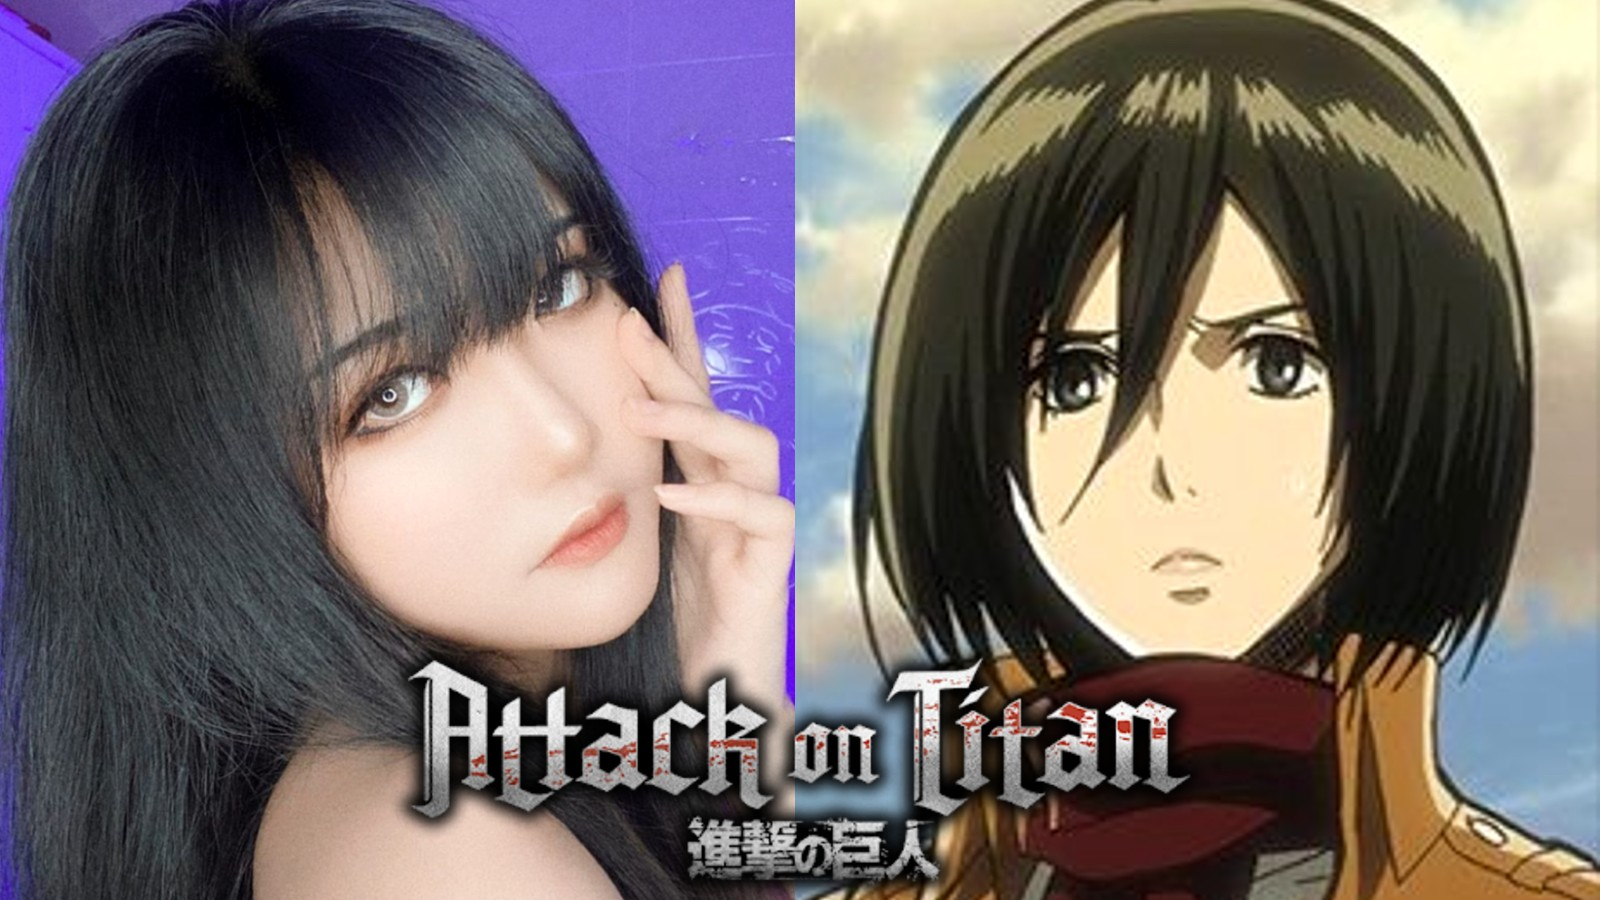 Cosplayer Anongnoon next to Mikasa from Attack On Titan